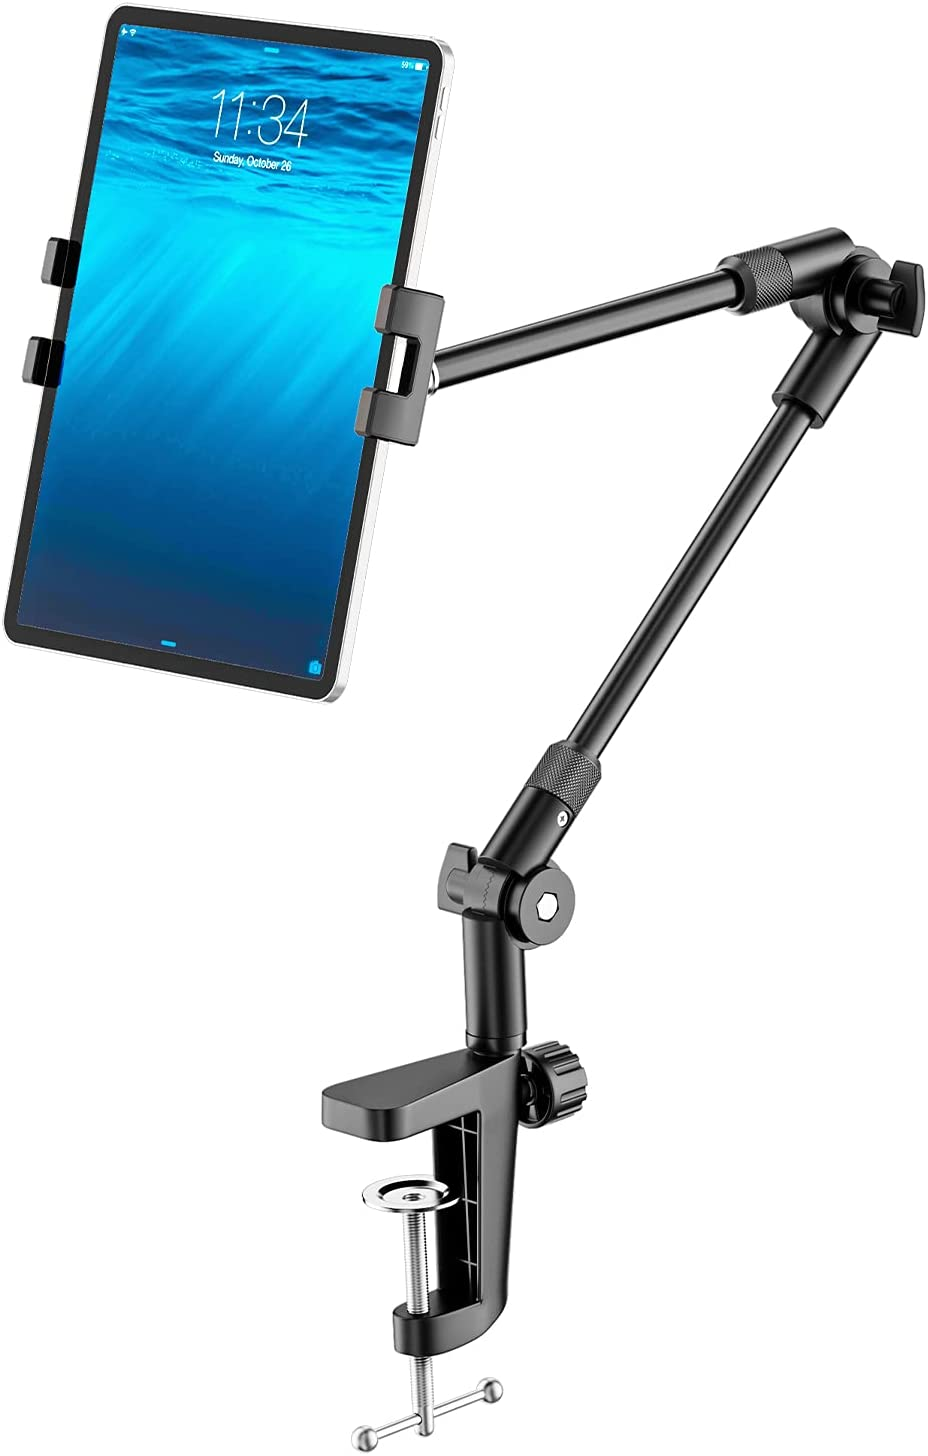 Tablet Stand Holder with 360° Phone iPad Tripod Mount, 27in Long Arm Webcam Stand Projector Camera Mount for Desk, Fit for 4.7